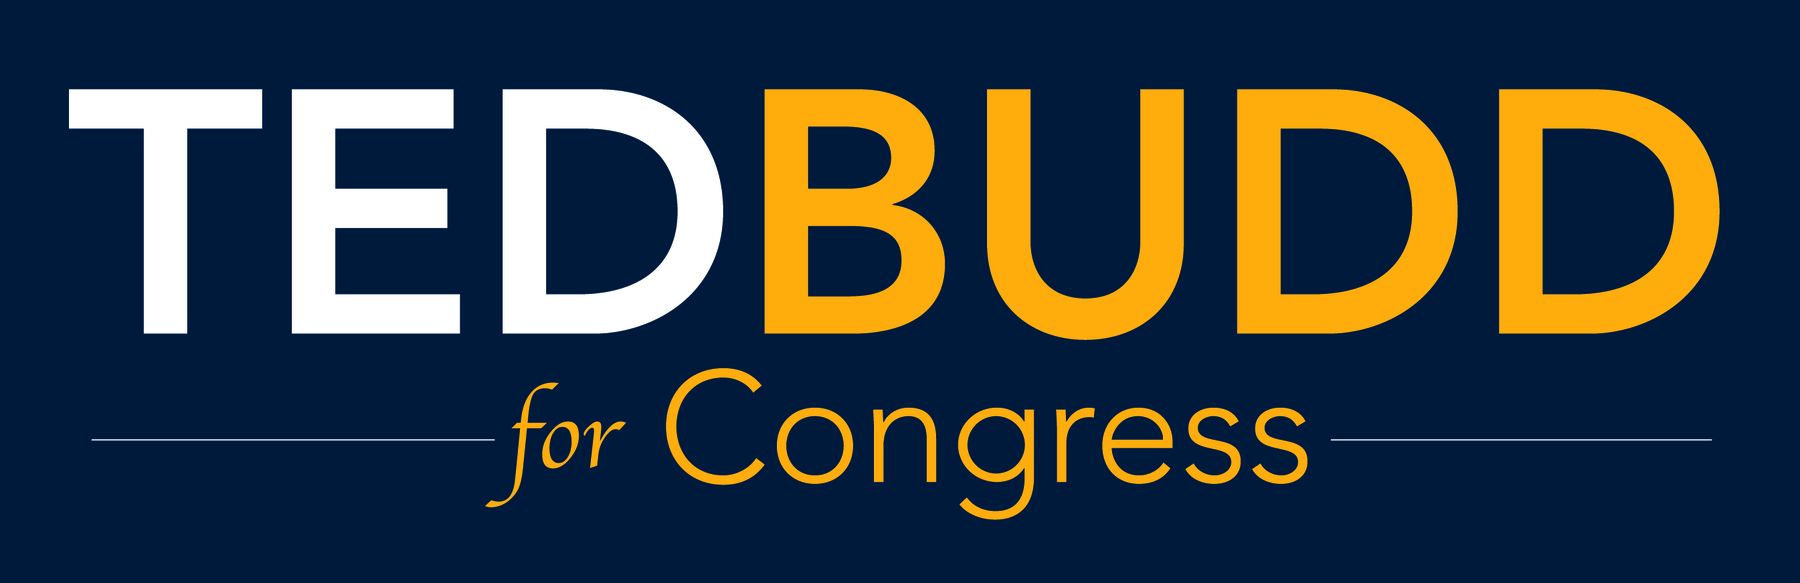 Ted Budd for Congress: Donate $25 Today - Show Ted Your Support